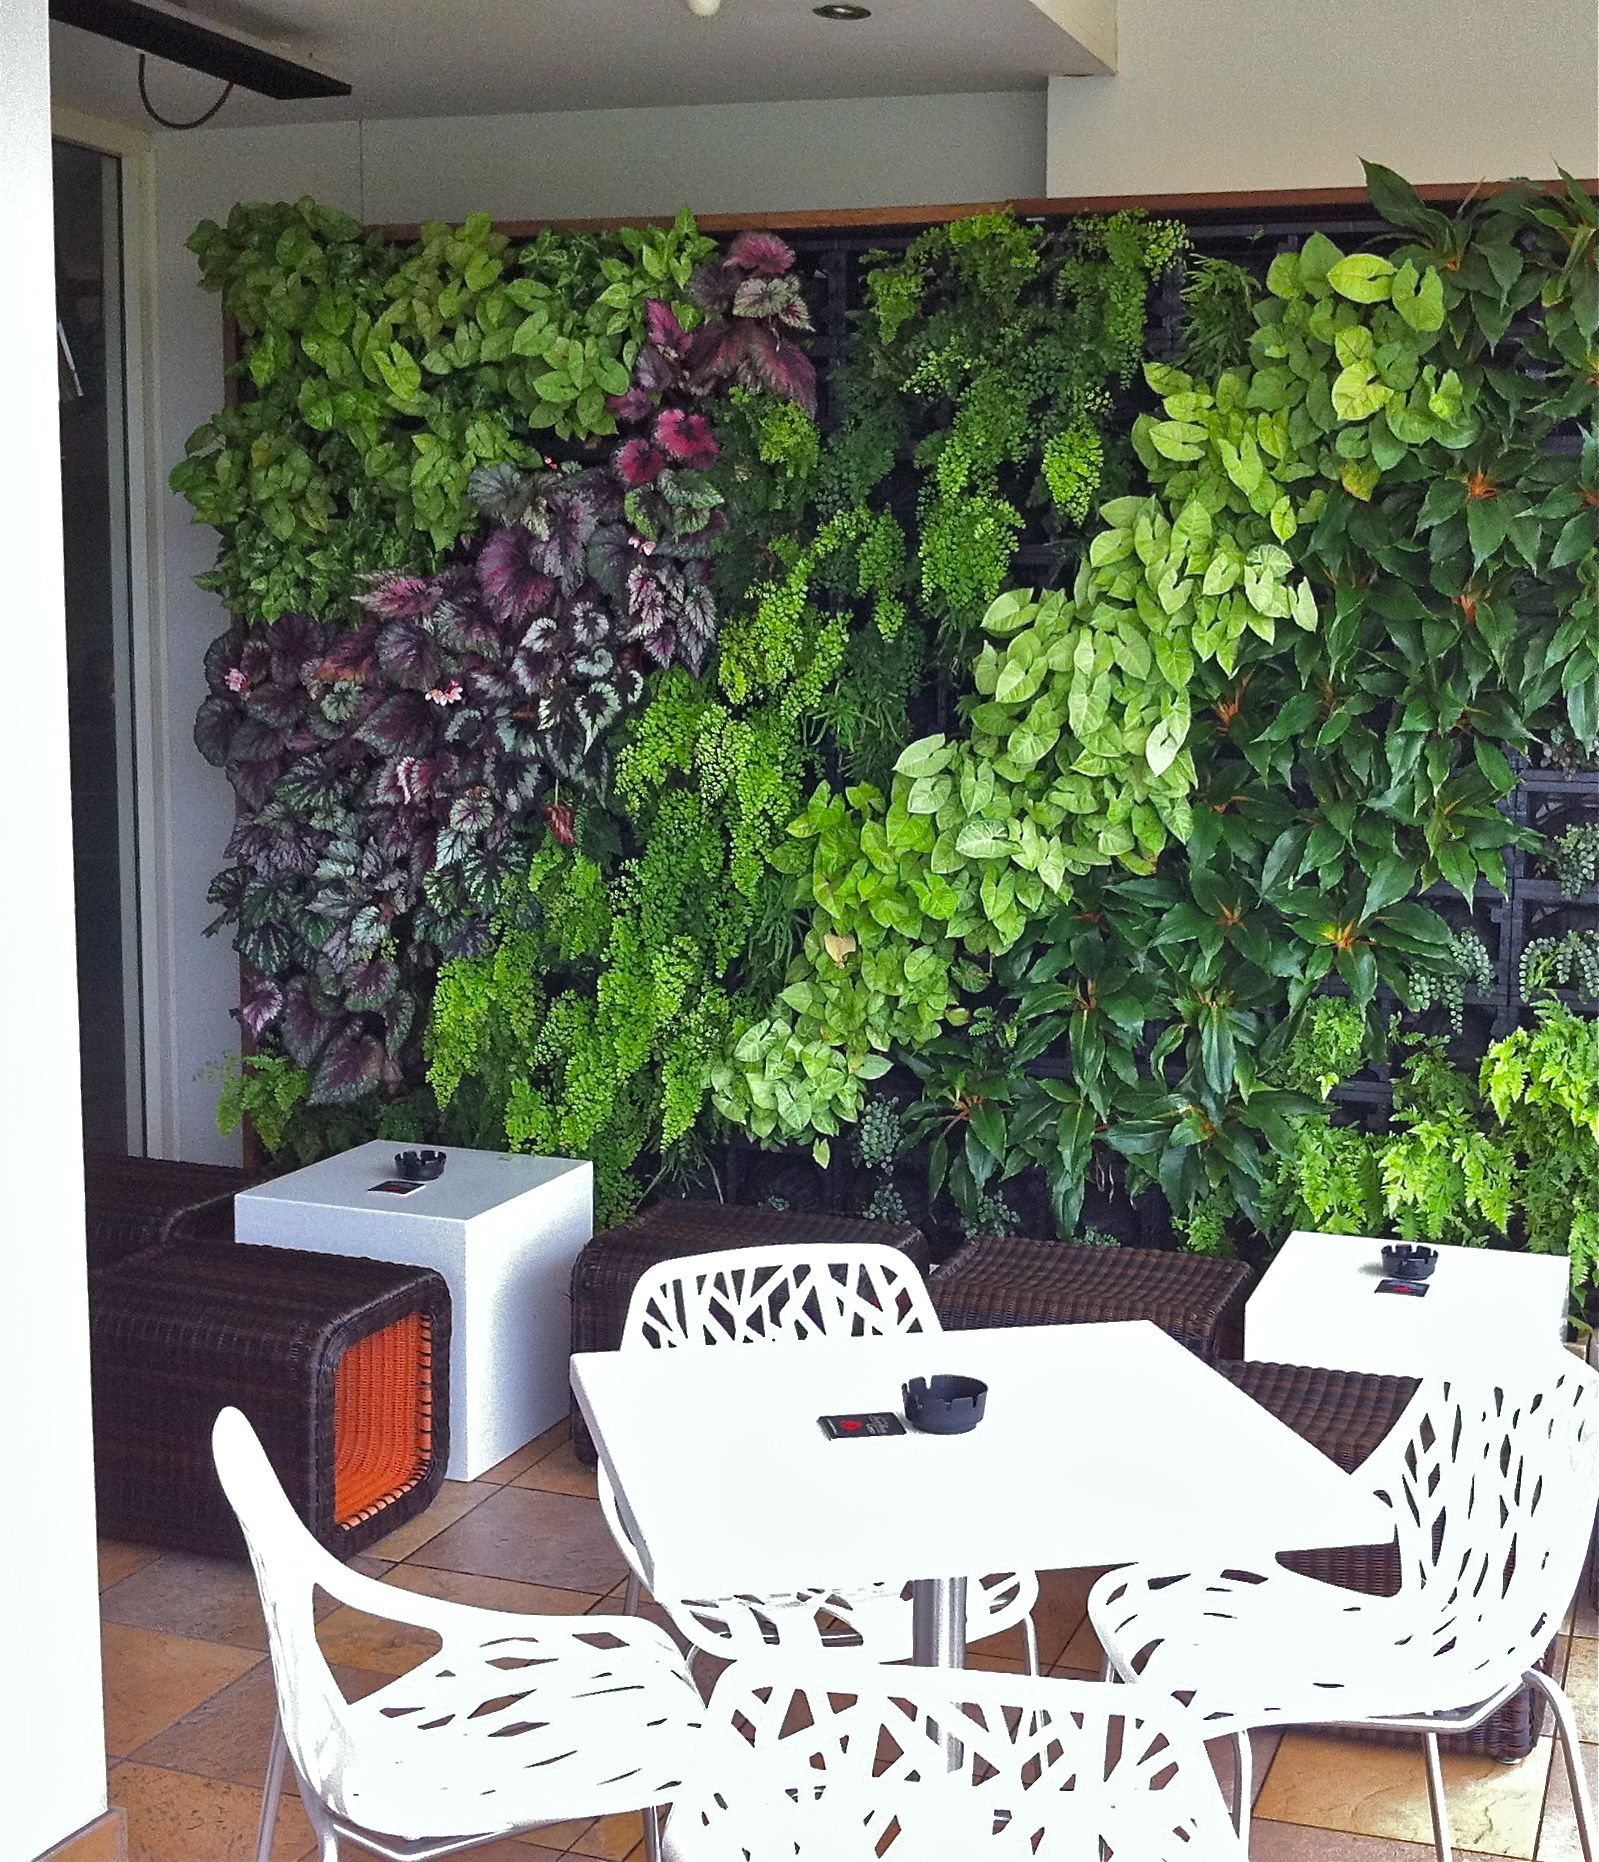 Green wall garden green roof garden vertical garden for Vertical garden design